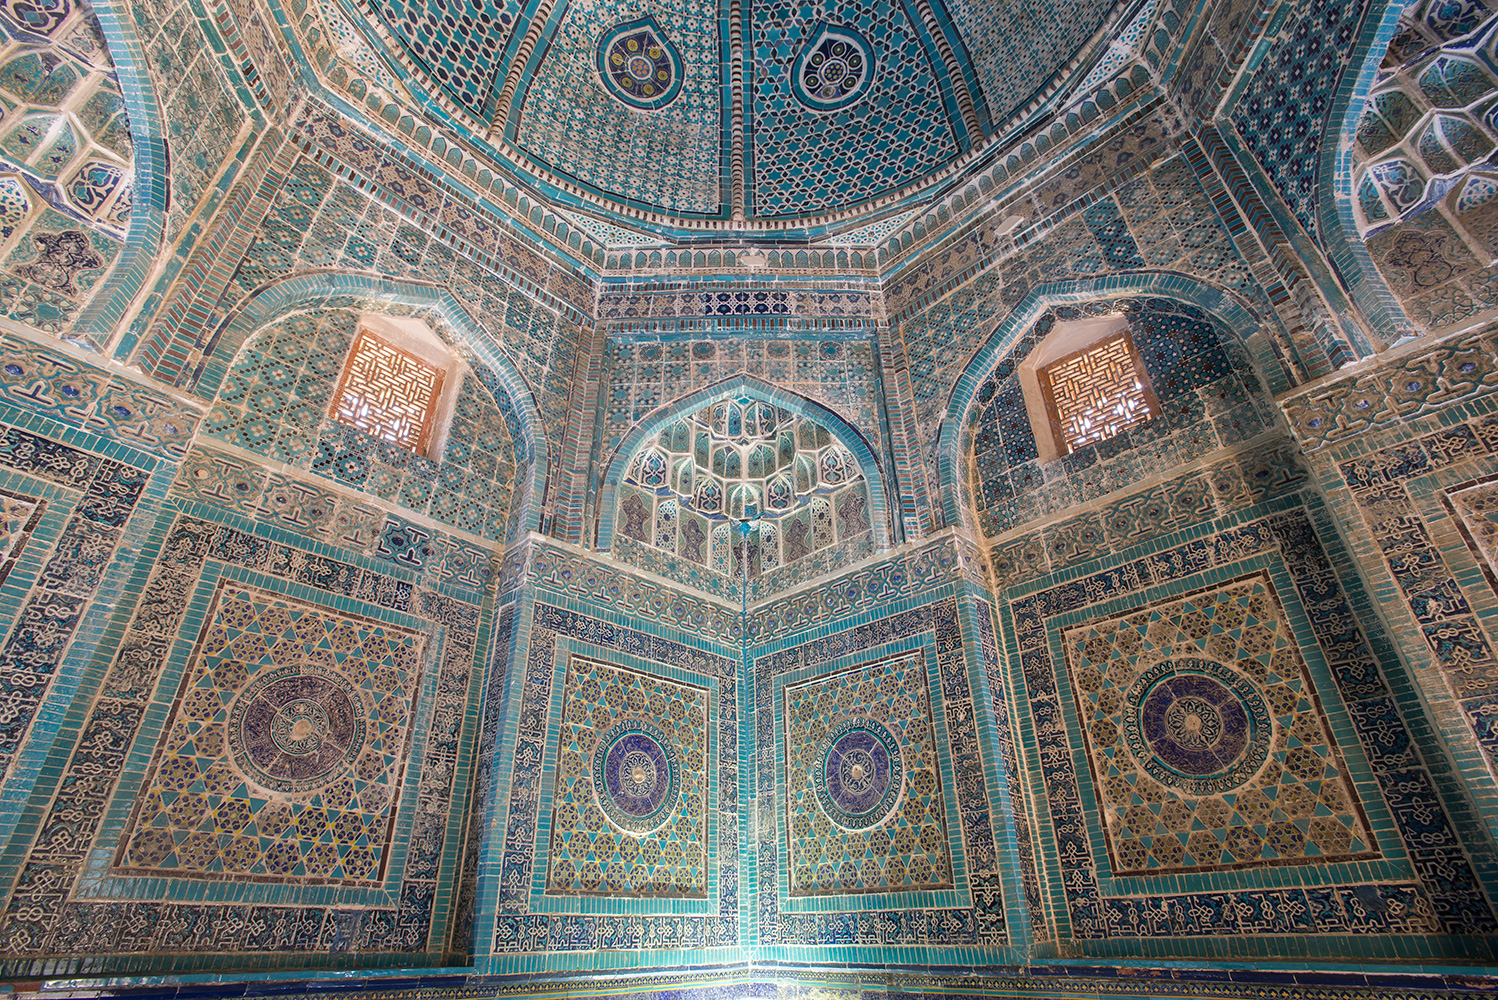 The interior of the mausoleum of Emir Timur's neice, Shadi Mulk Aka. 1372. This was the first Timurid structure constructed here